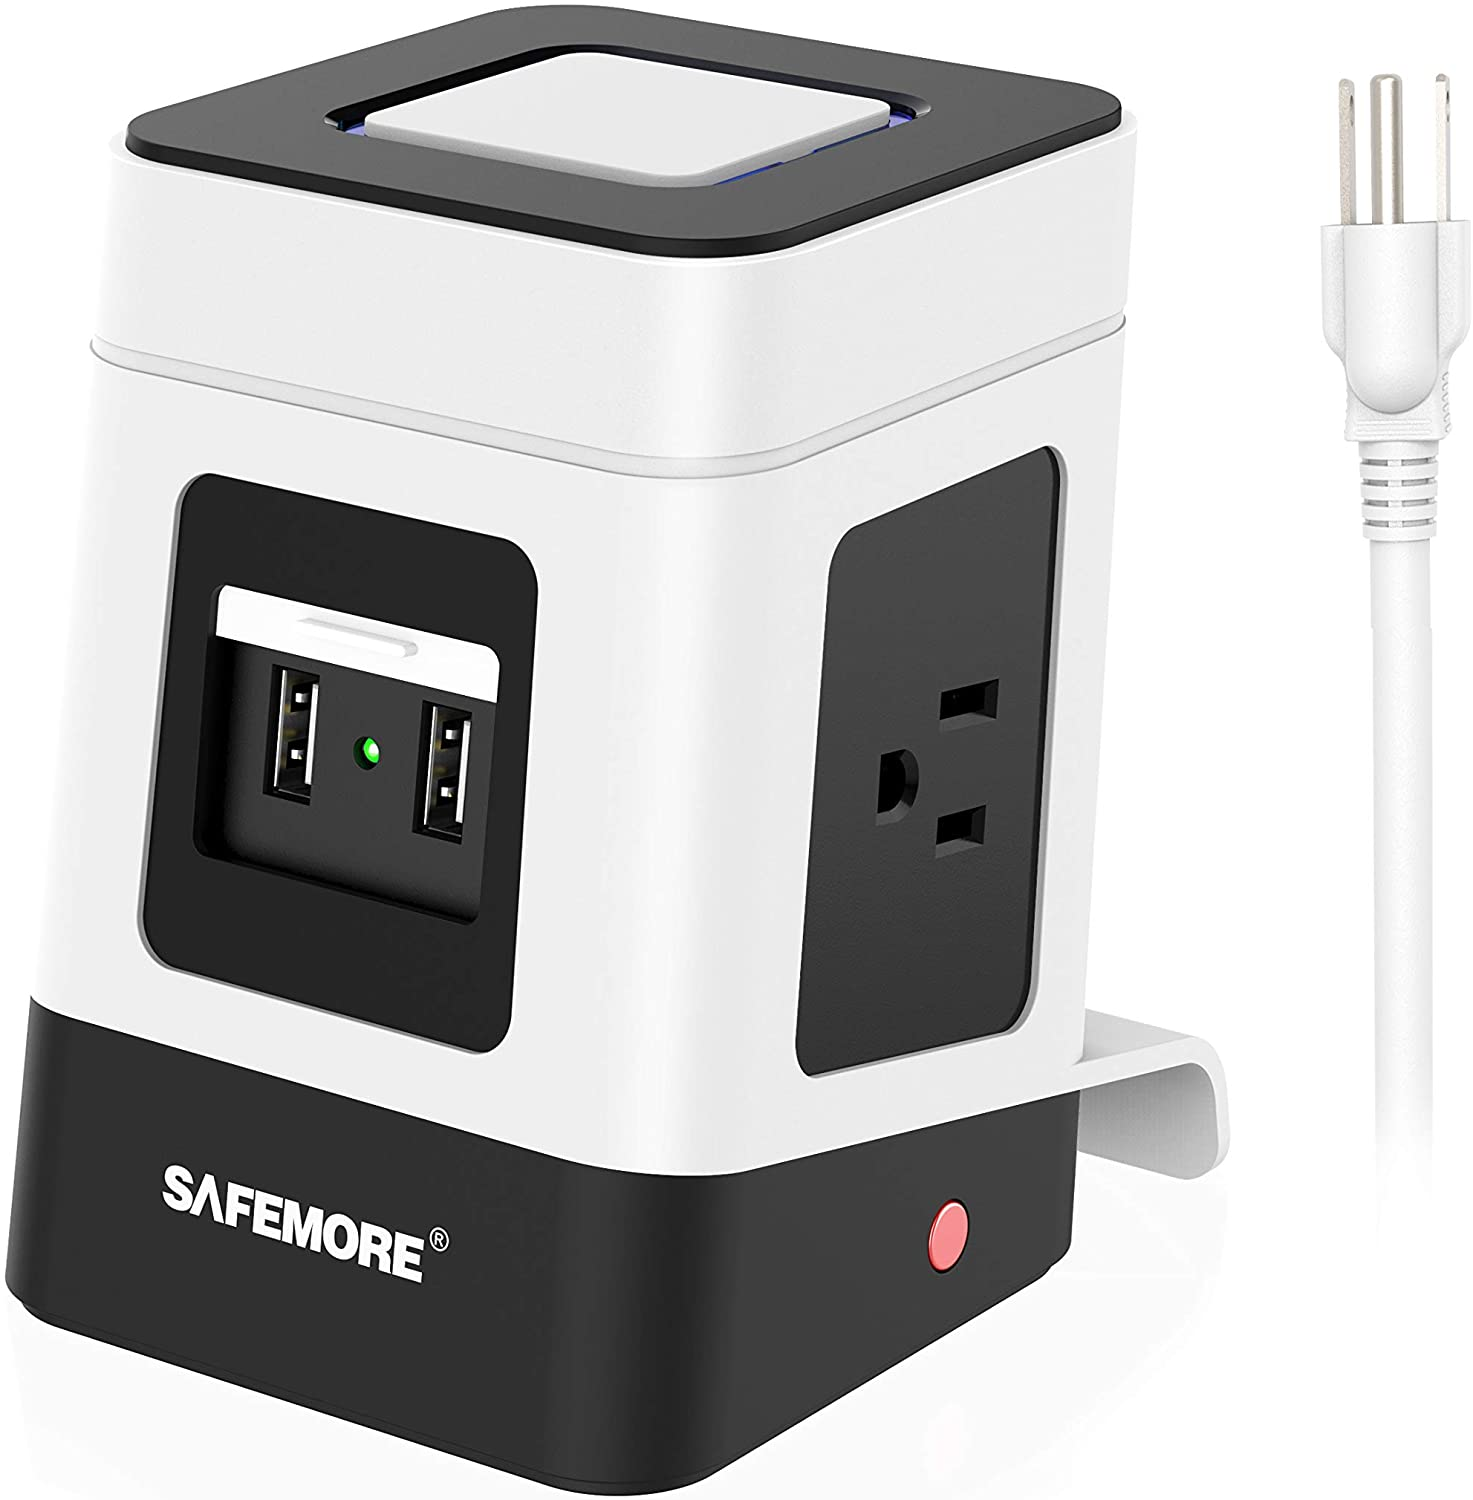 SAFEMORE USB Surge Protector Power Strip with 2 USB Charging Station,3 Power Outlet and 6.5Ft Extension Cord Power Tower for Nightstand Accessories,Tabletop, Game,Smartphone, White & Black